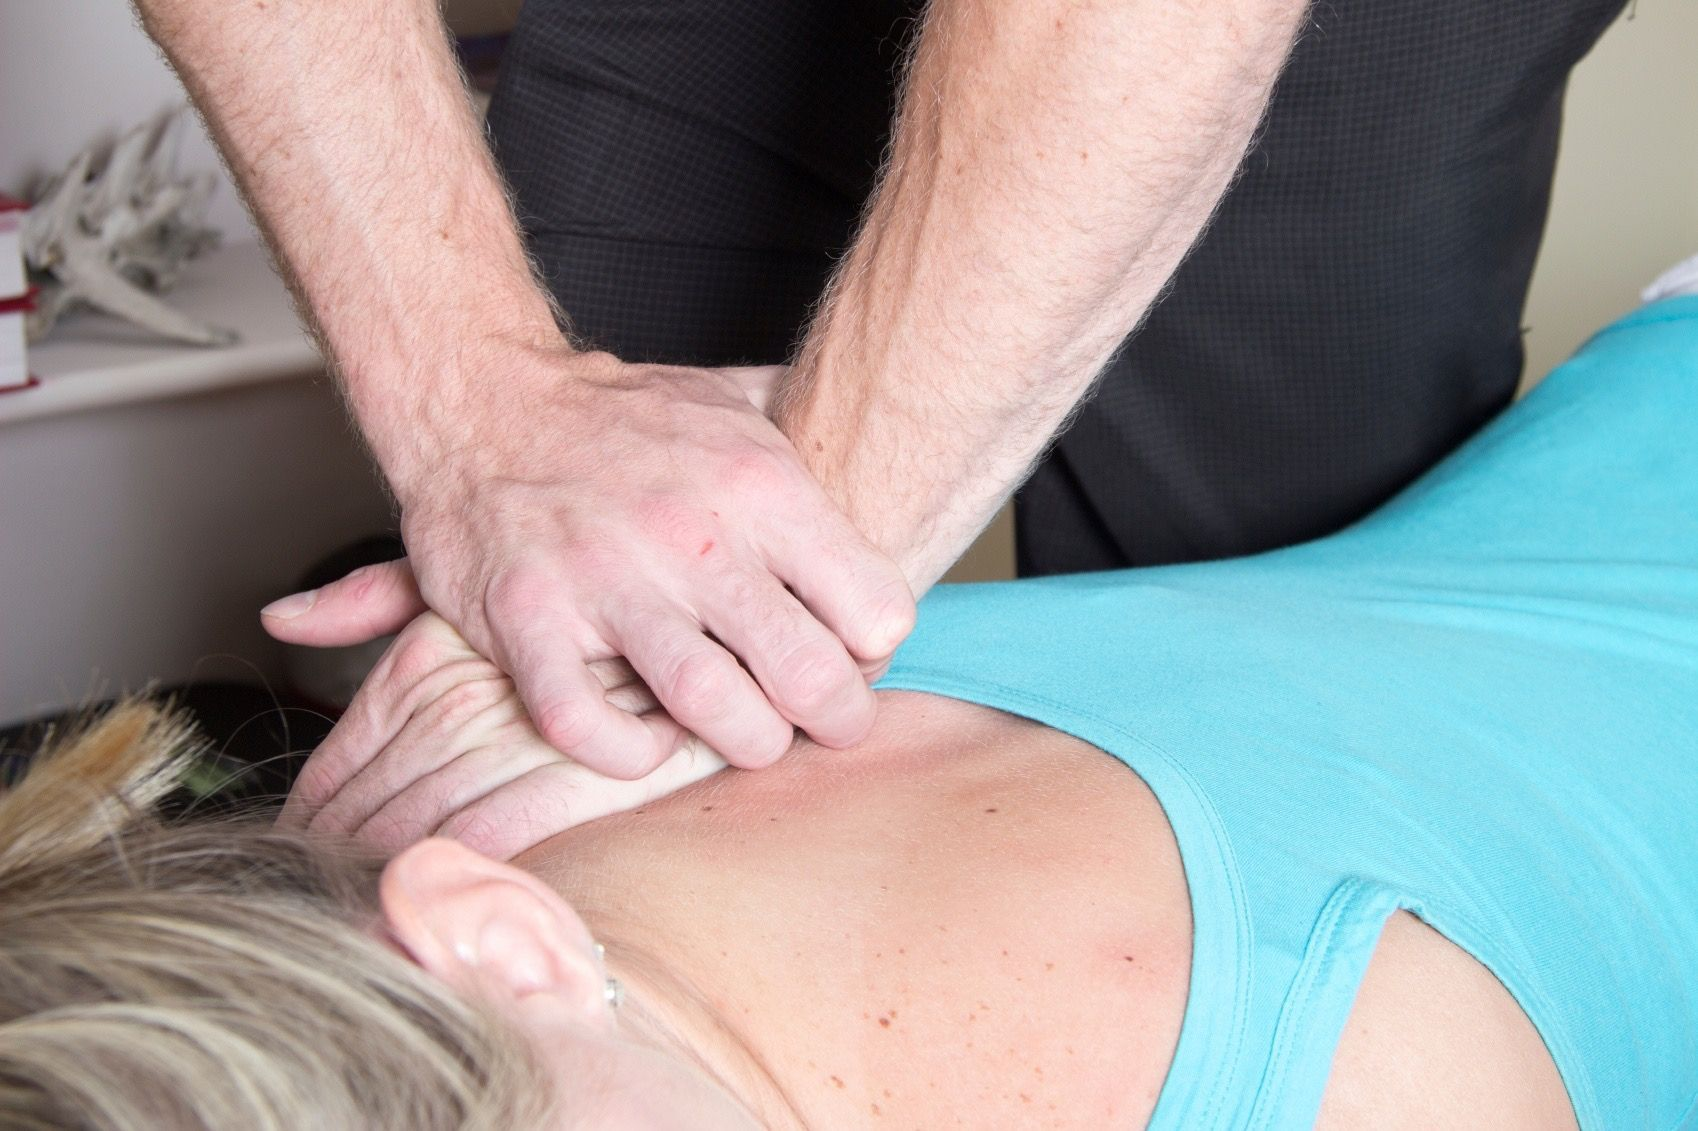 Car Accident Injury Treatment in Smithville, GA